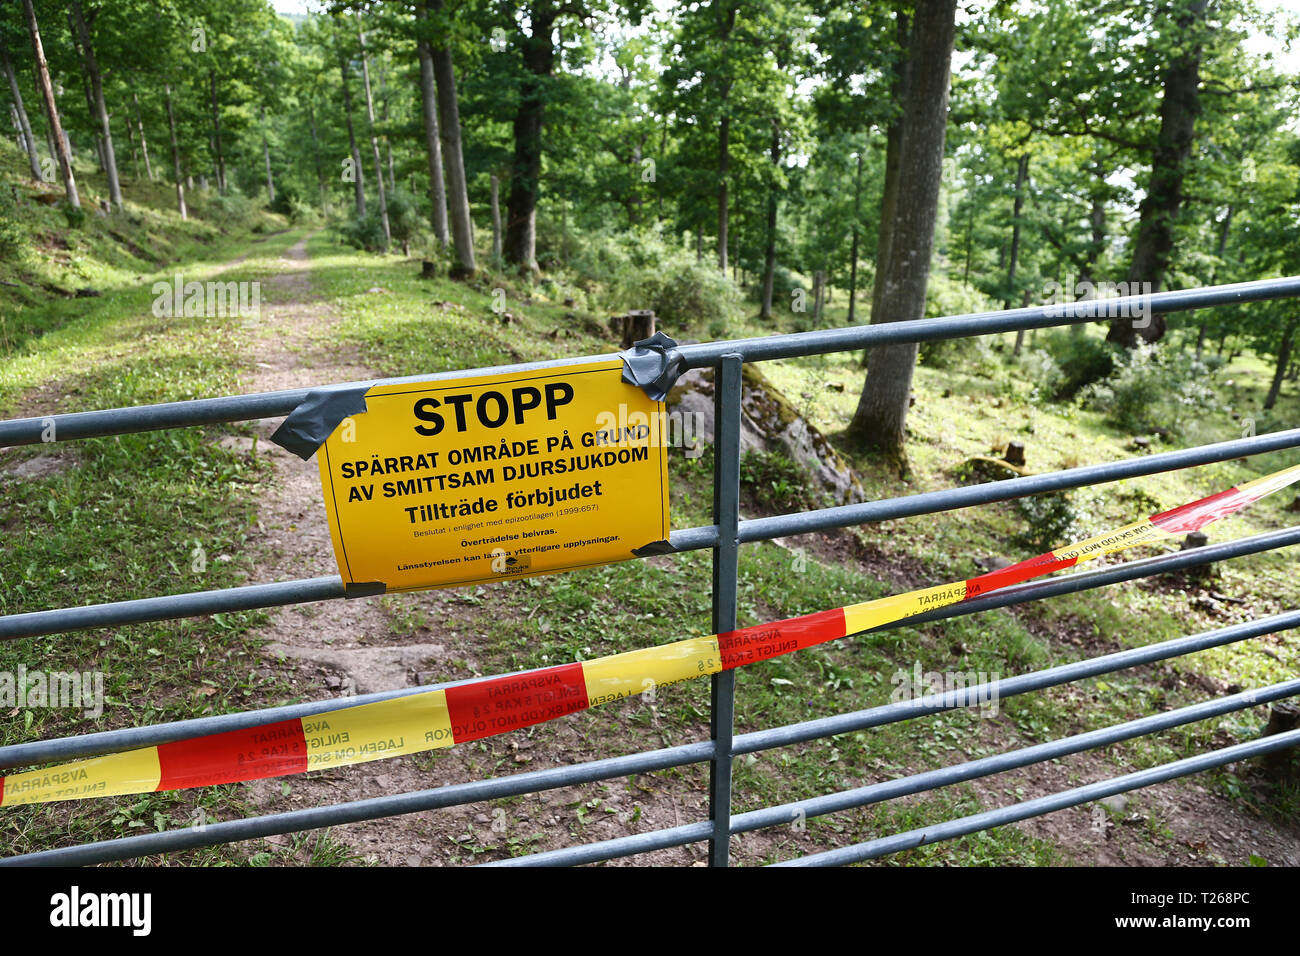 Omberg 2016 07 15 Another Case Of Anthrax Has Been Found In The Herd Of Cattle At The First Infected Farm At Omberg In Ostergotland Photo Jeppe Gustafsson Stock Photo Alamy